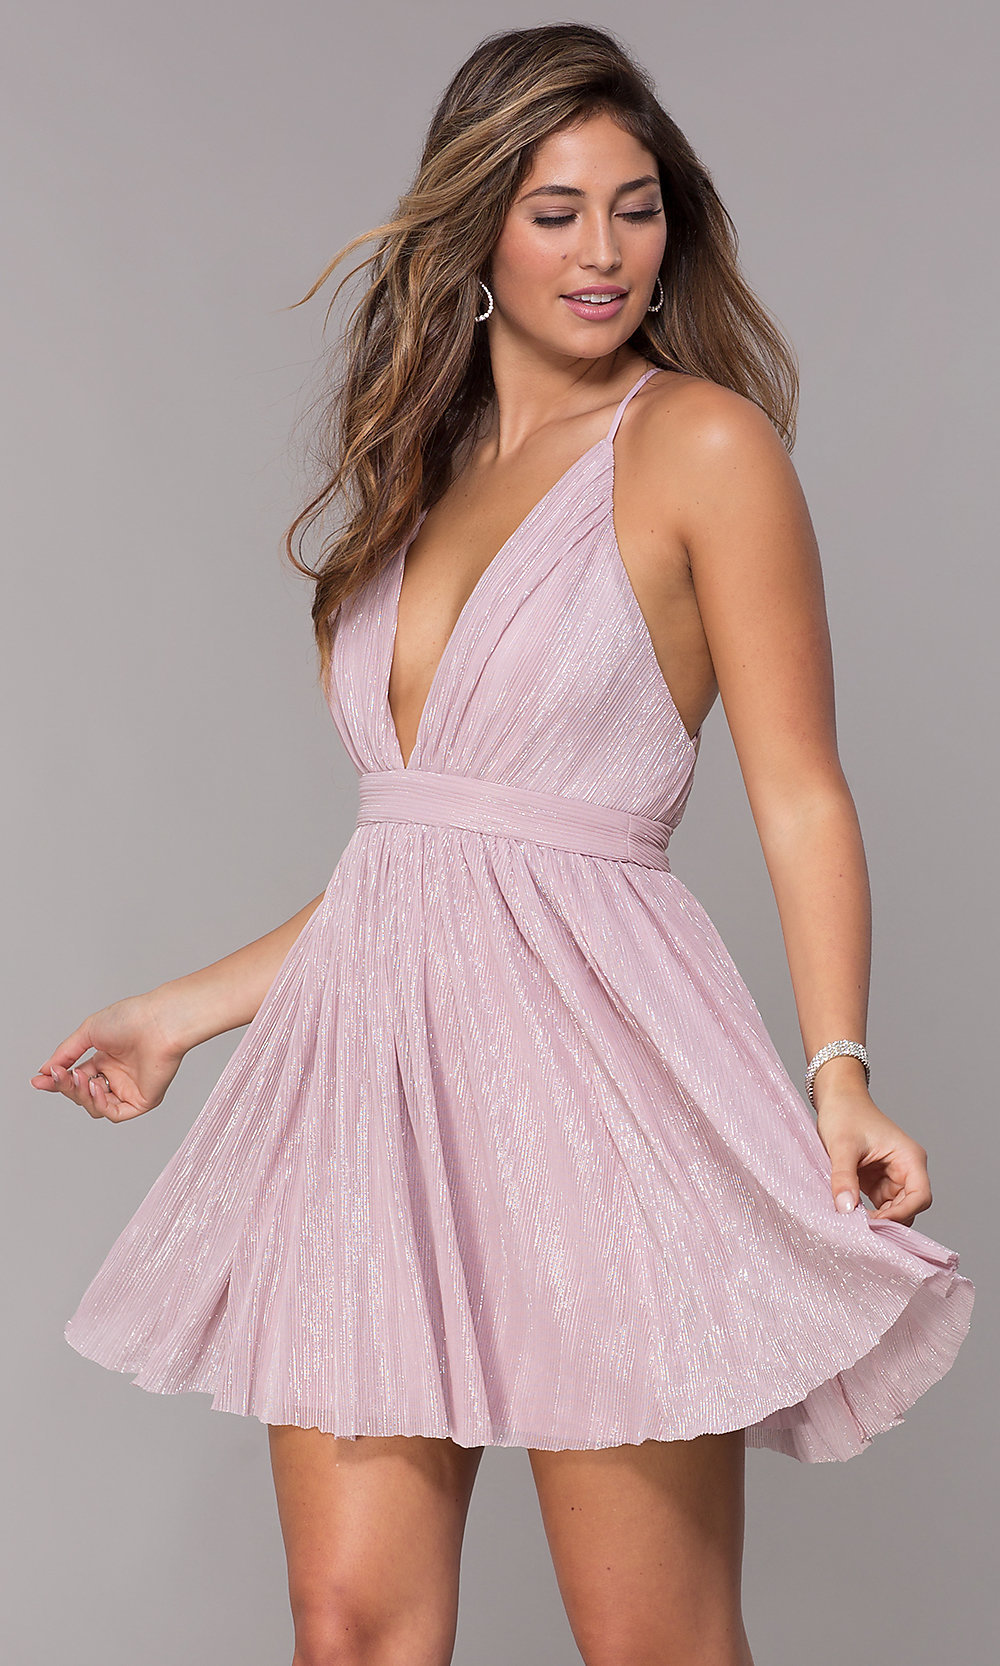 V-Neck Satin Party Dress with Tulle Skirt and Beaded